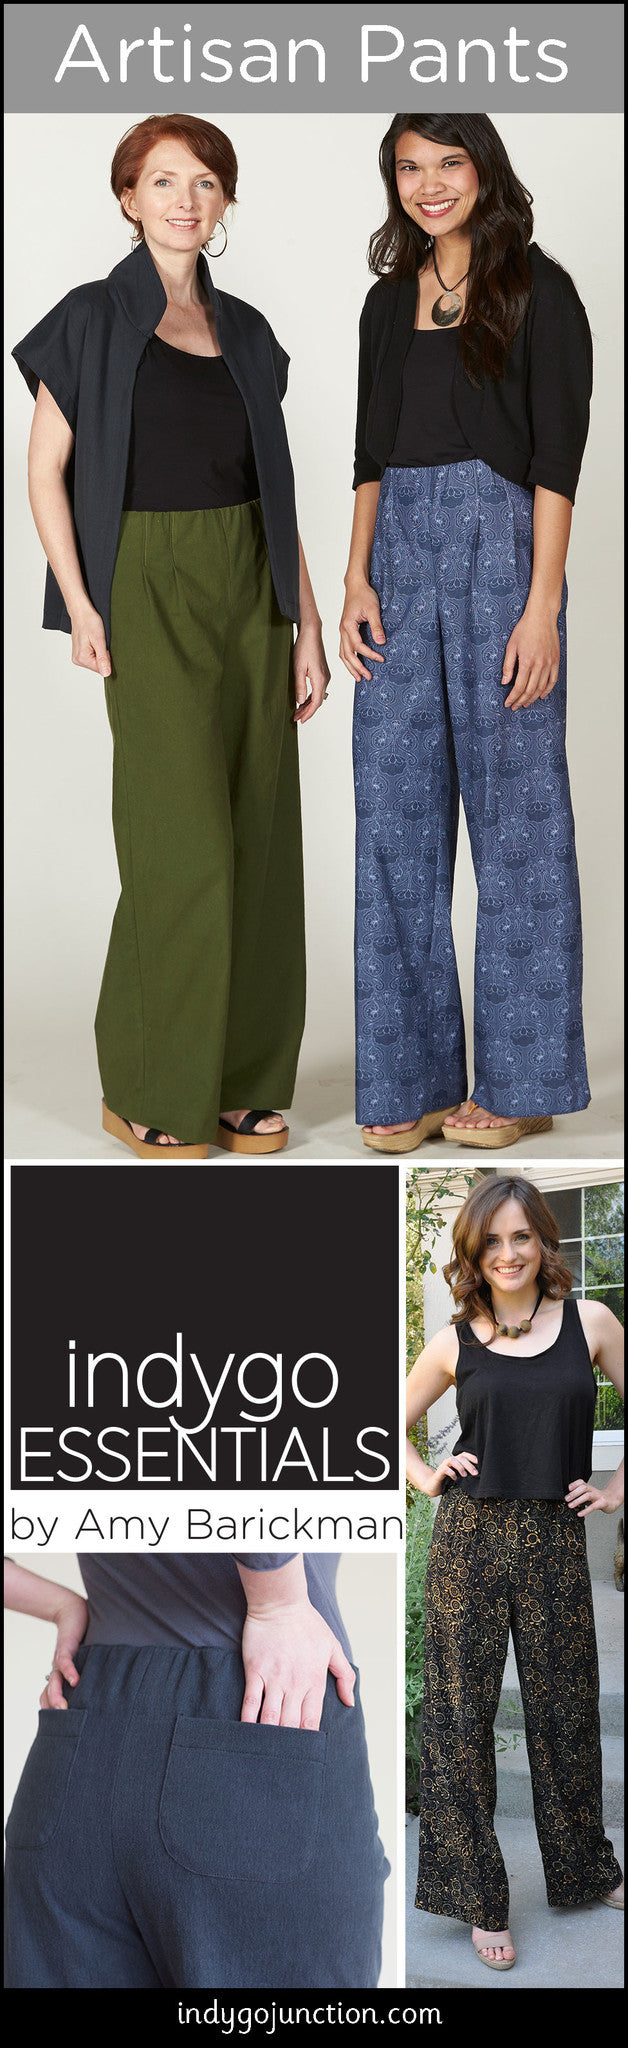 Indygo Essentials Artisan pants- sophisticated comfort, beautiful design.